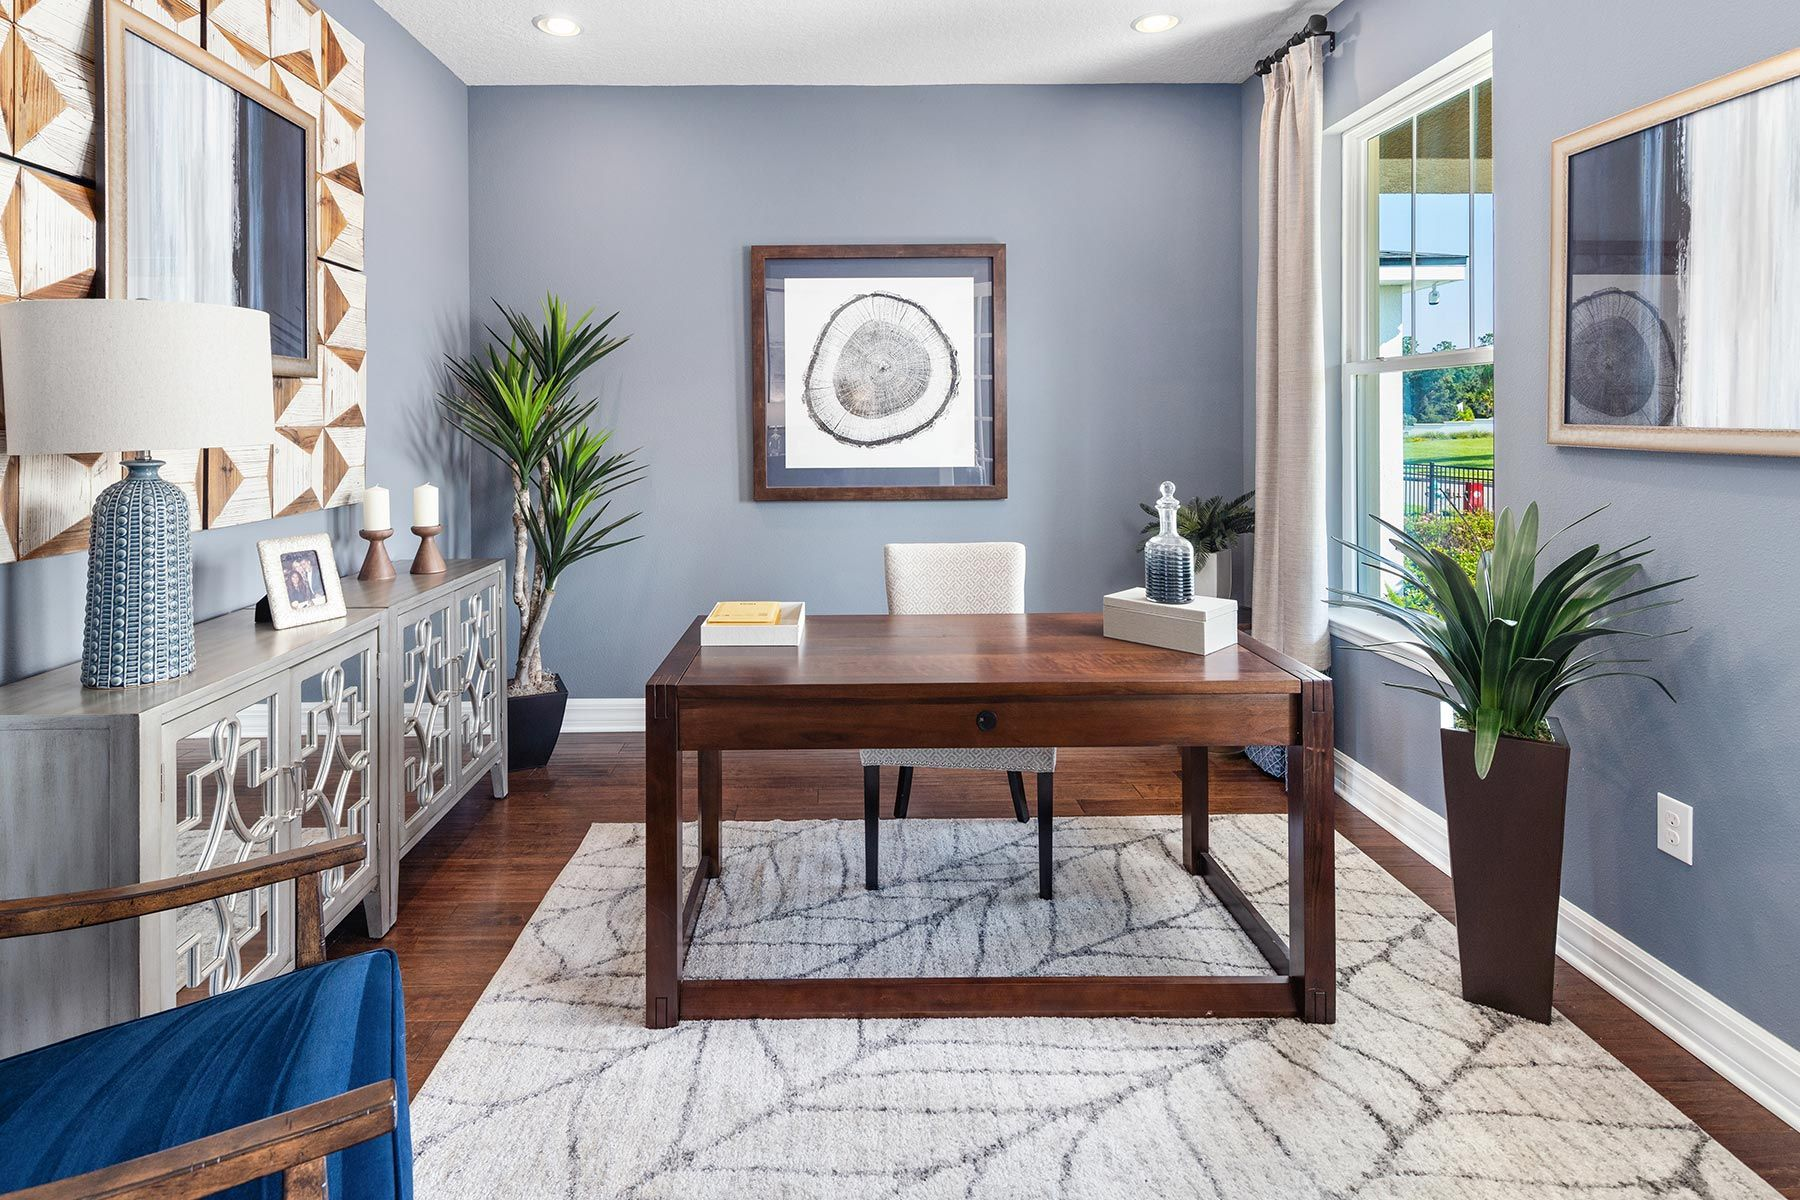 Living Area featured in the Kensington By Mattamy Homes in Orlando, FL